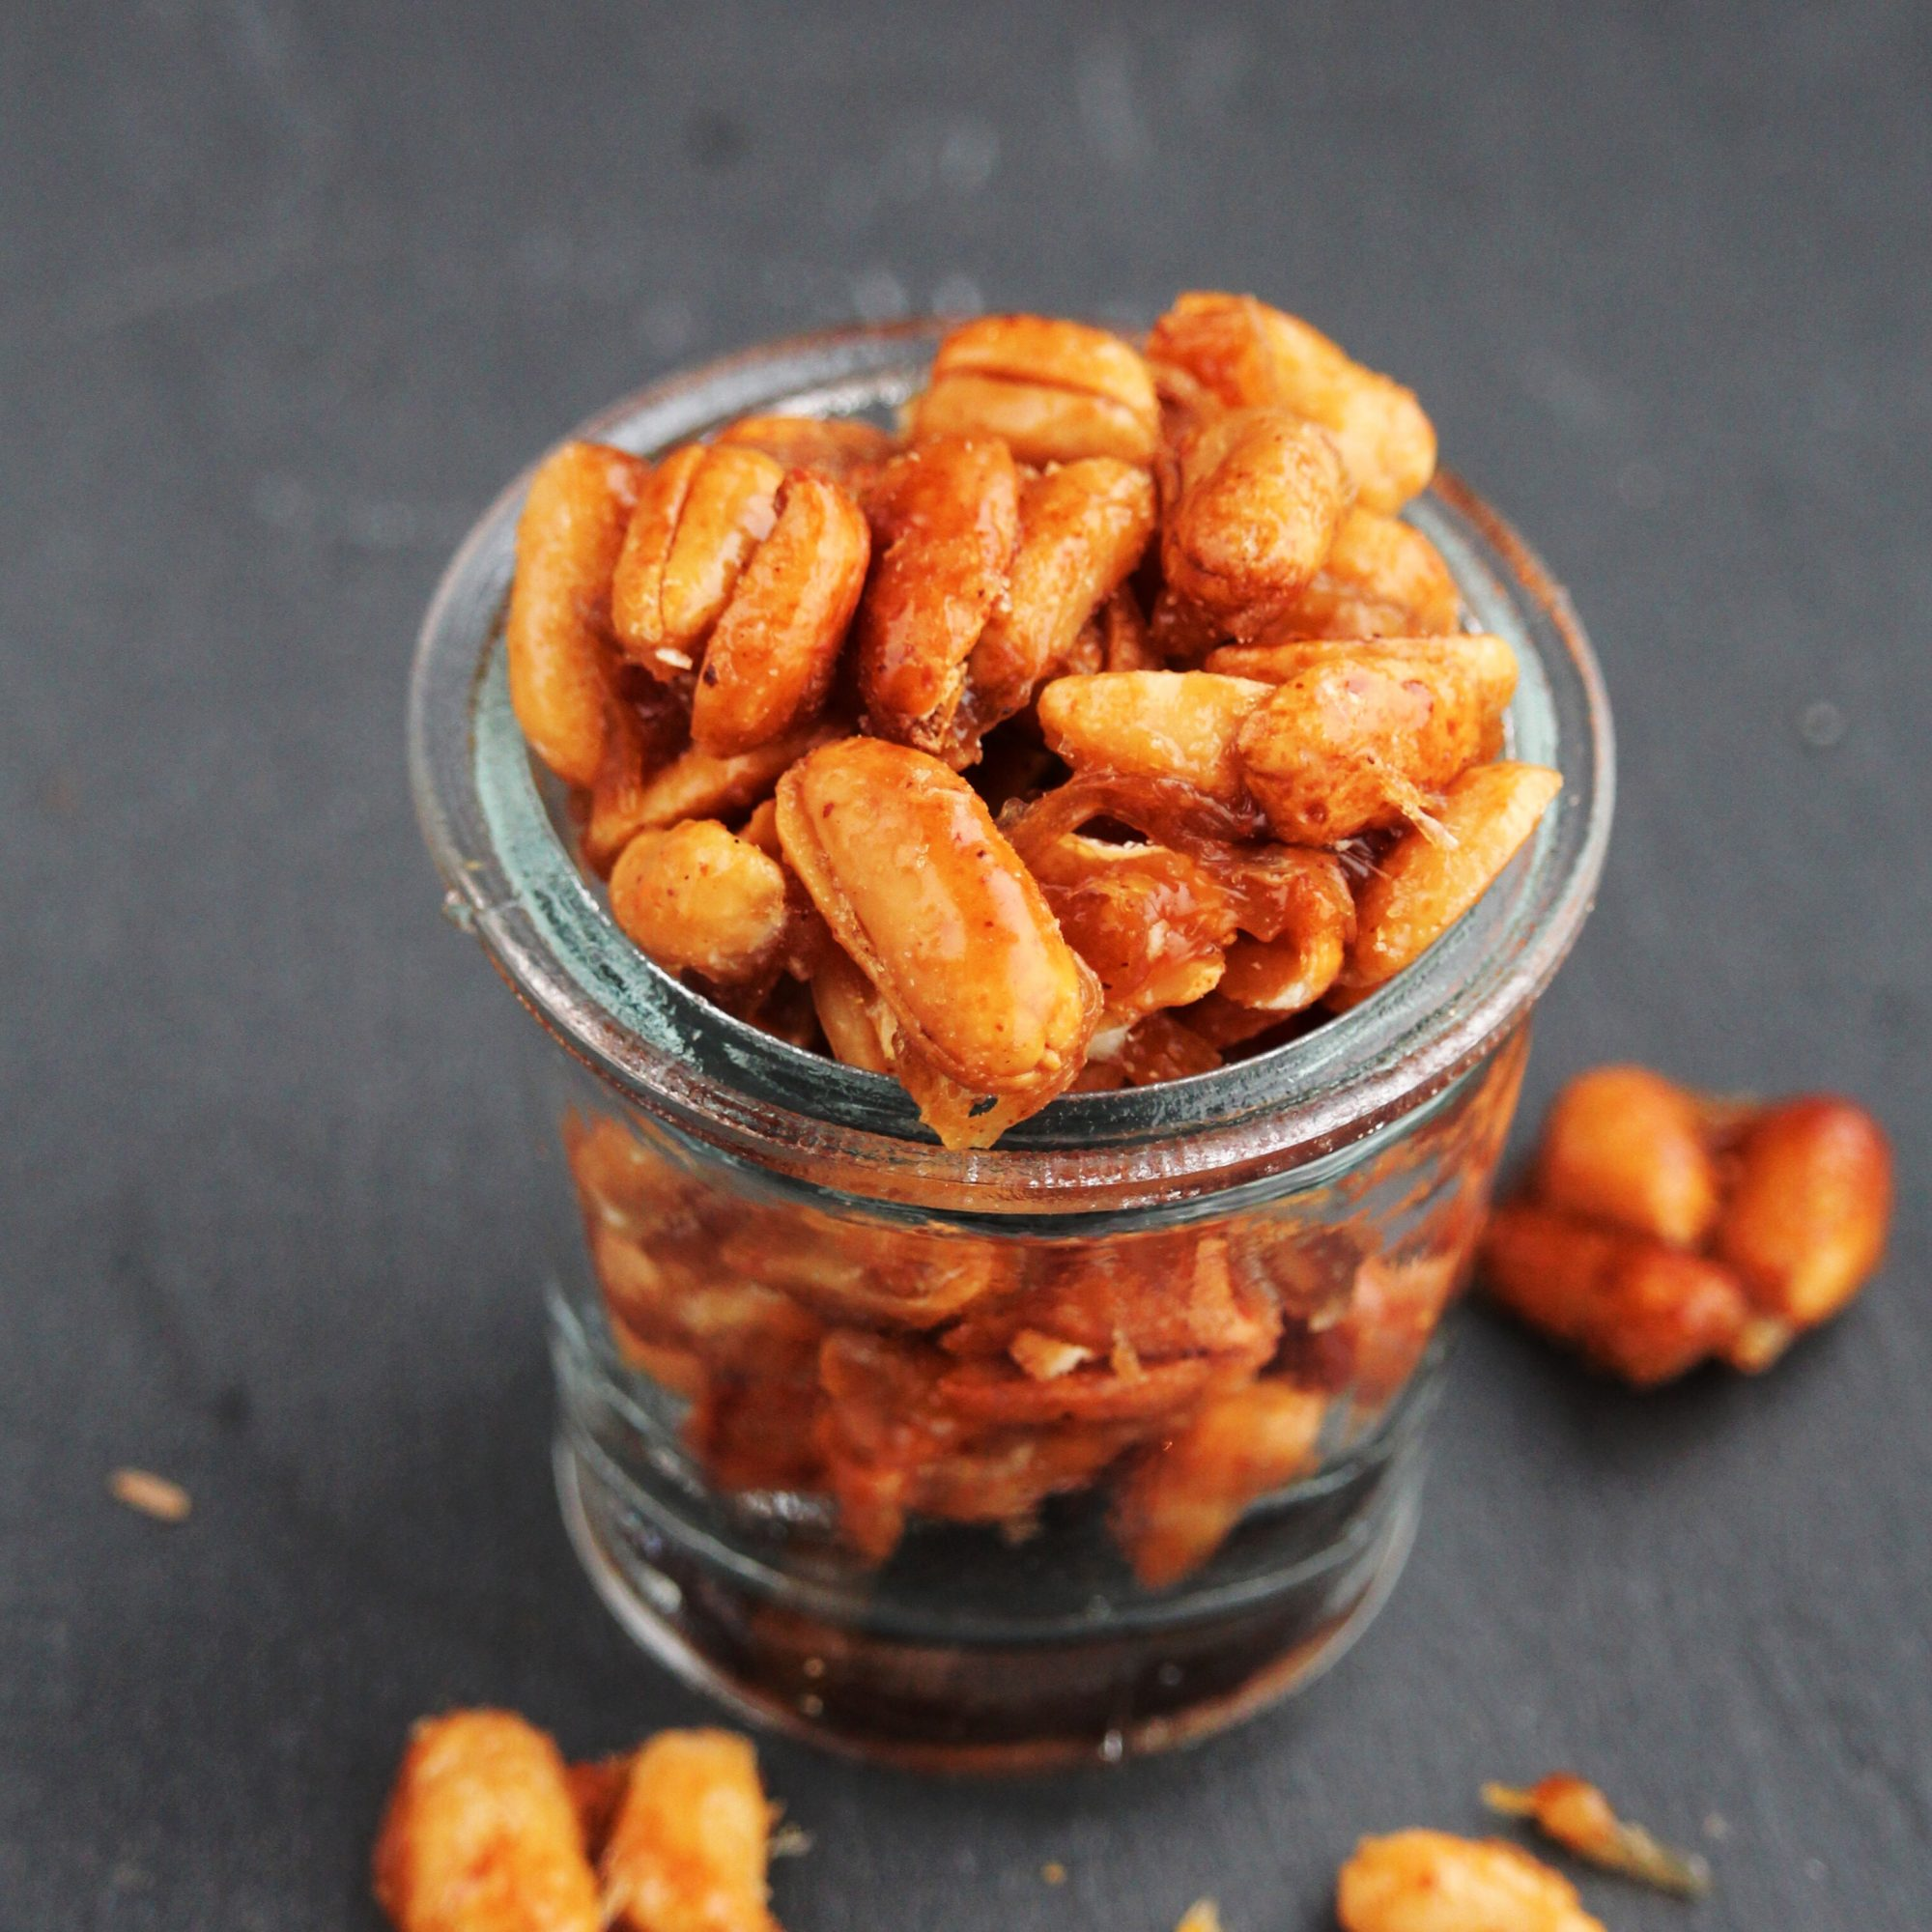 candied nuts in a glass jar